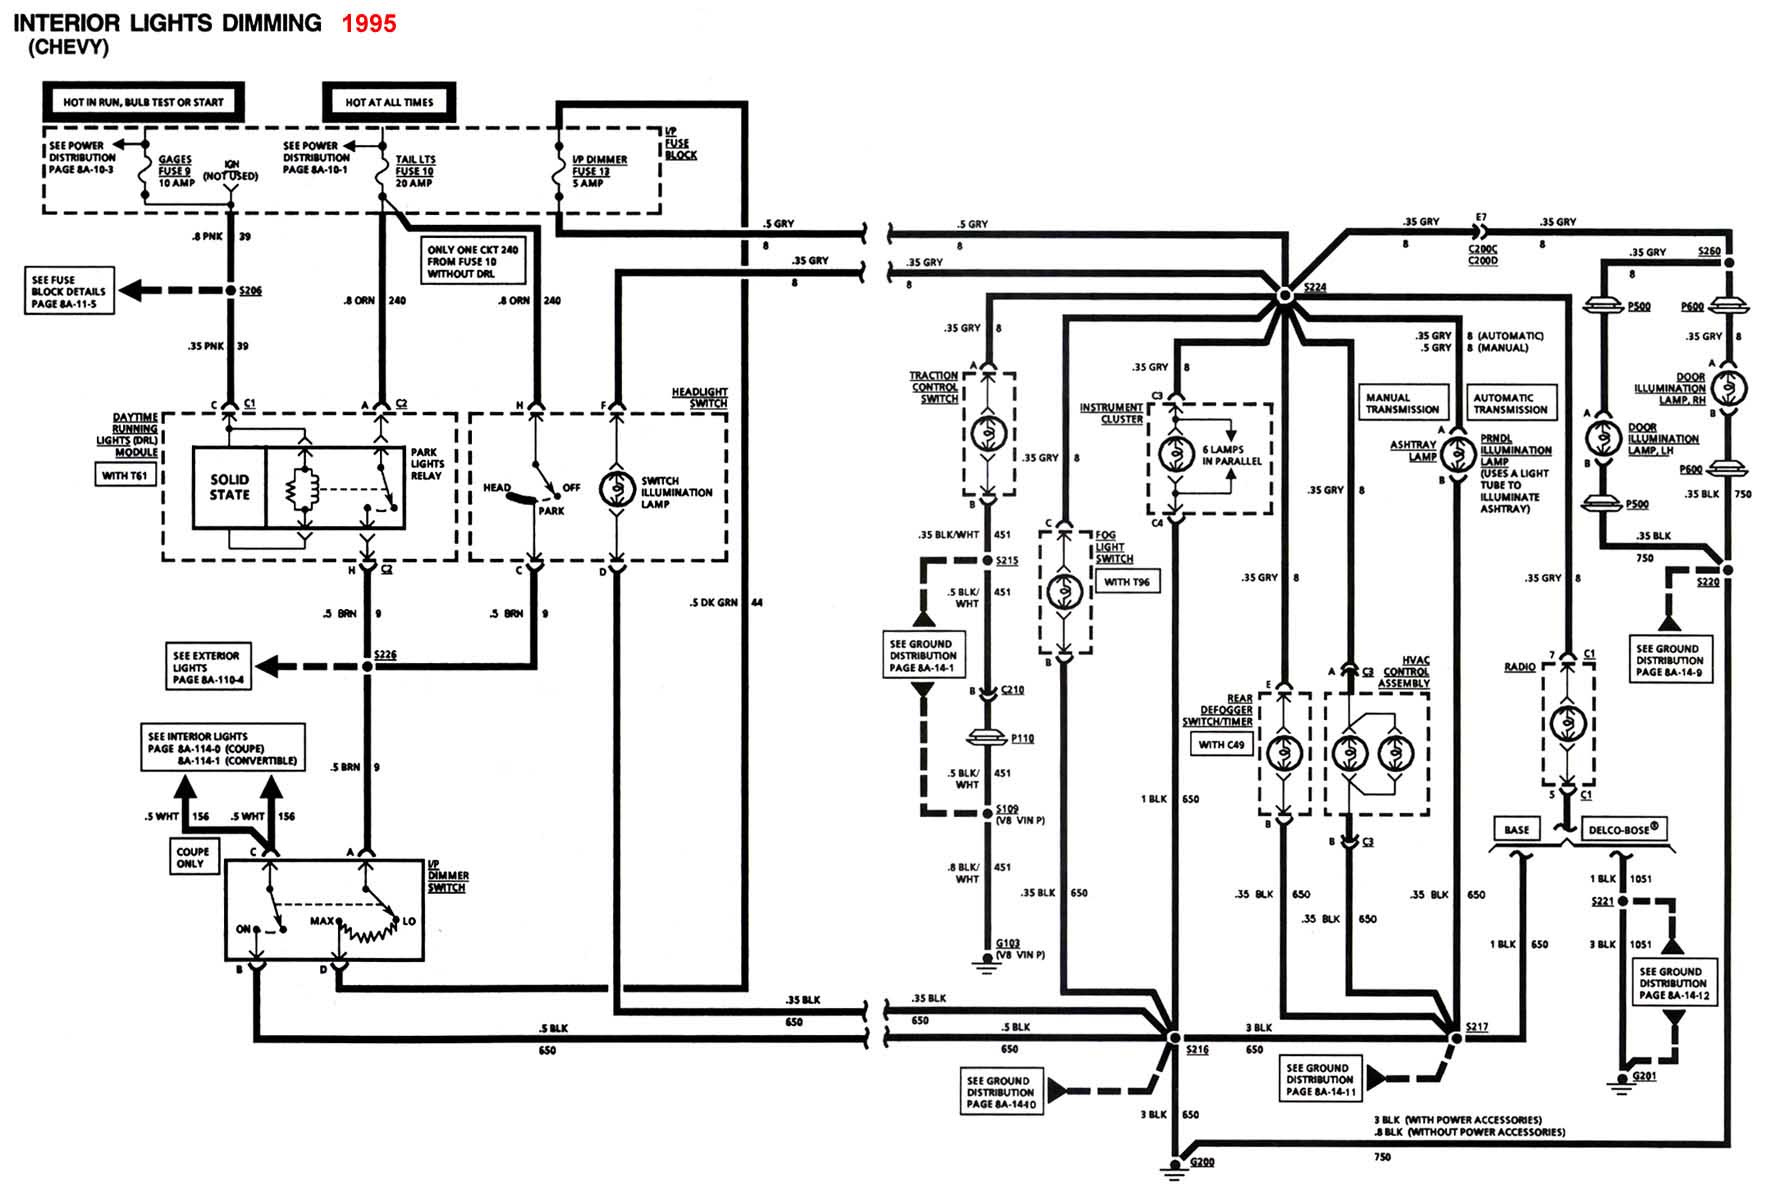 hight resolution of 95 camaro z28 wiring diagram wiring diagram name 1995 chevy camaro z28 wiring diagram 95 camaro